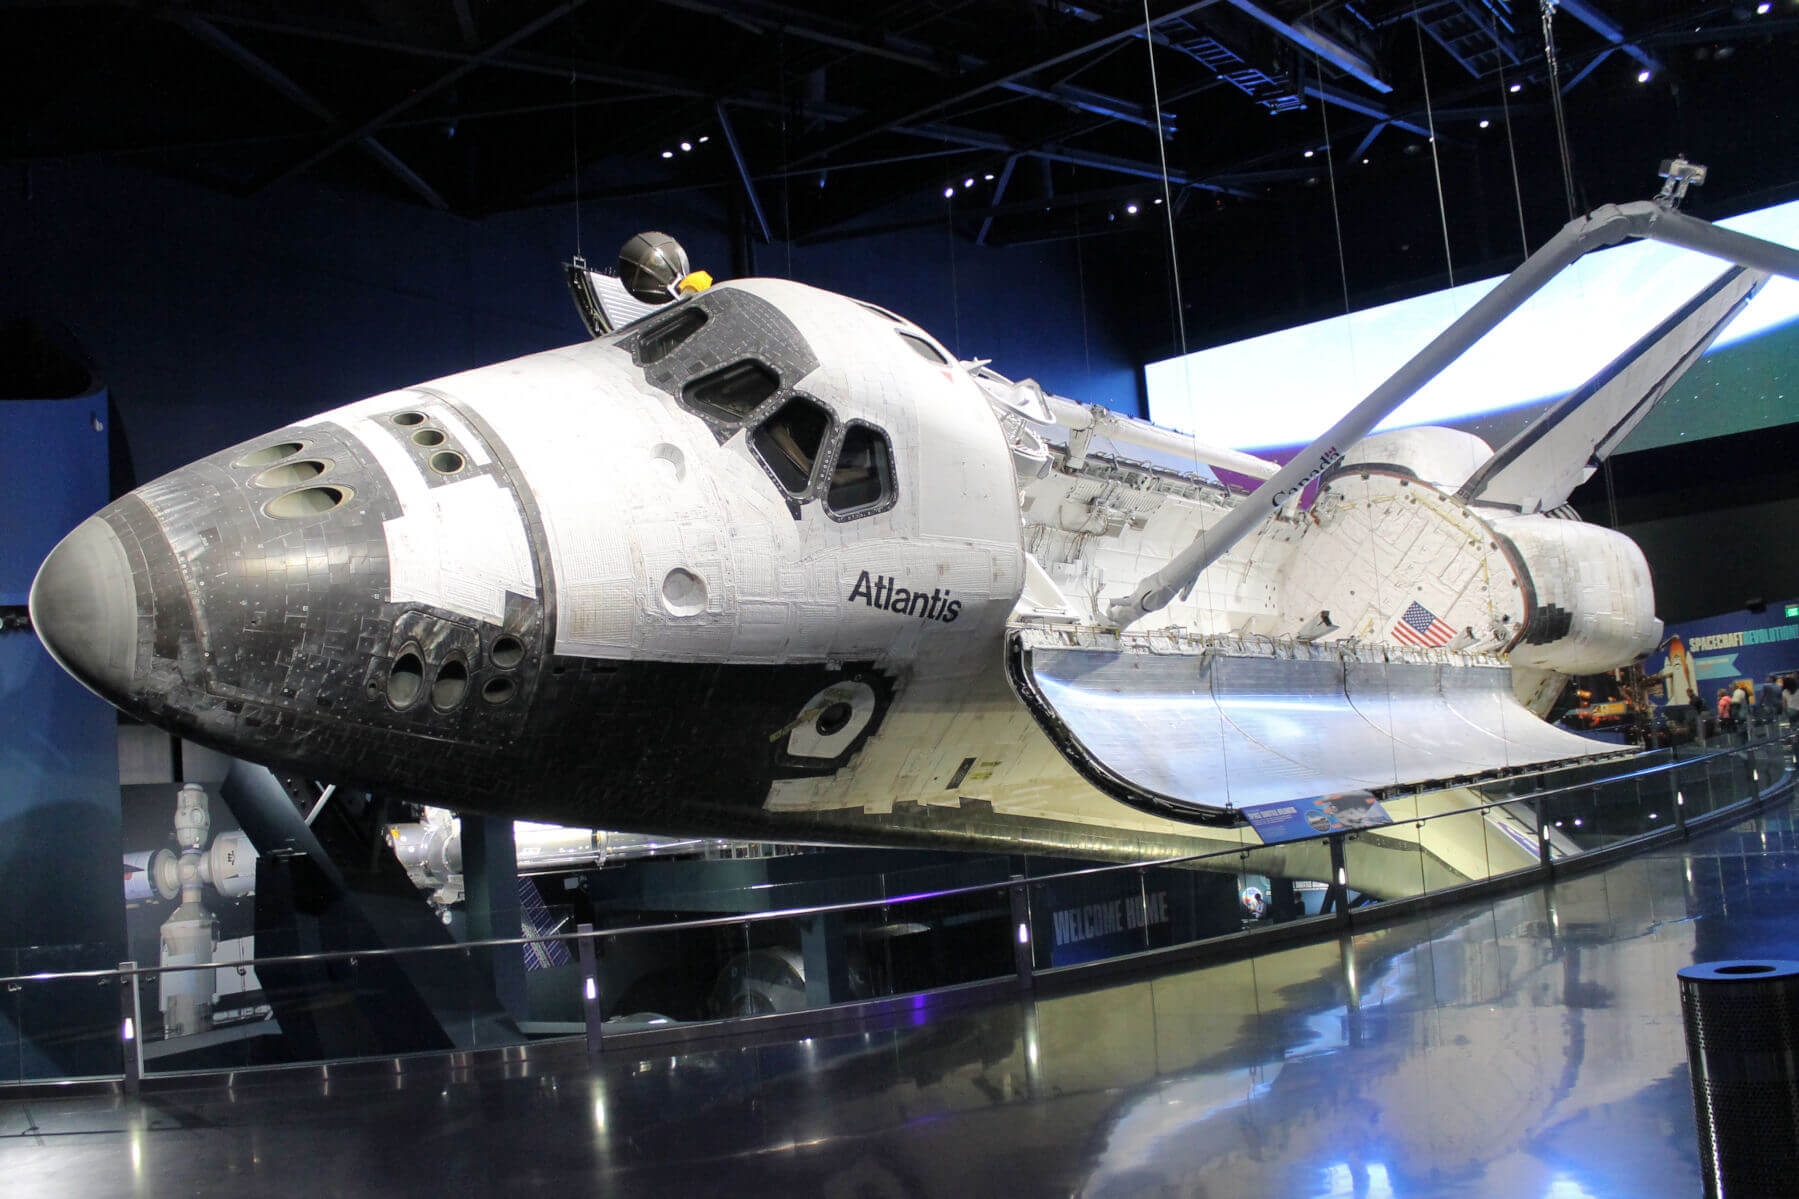 The Space Shuttle at Kennedy Space Center is a great vacation attraction during a Disney Cruise